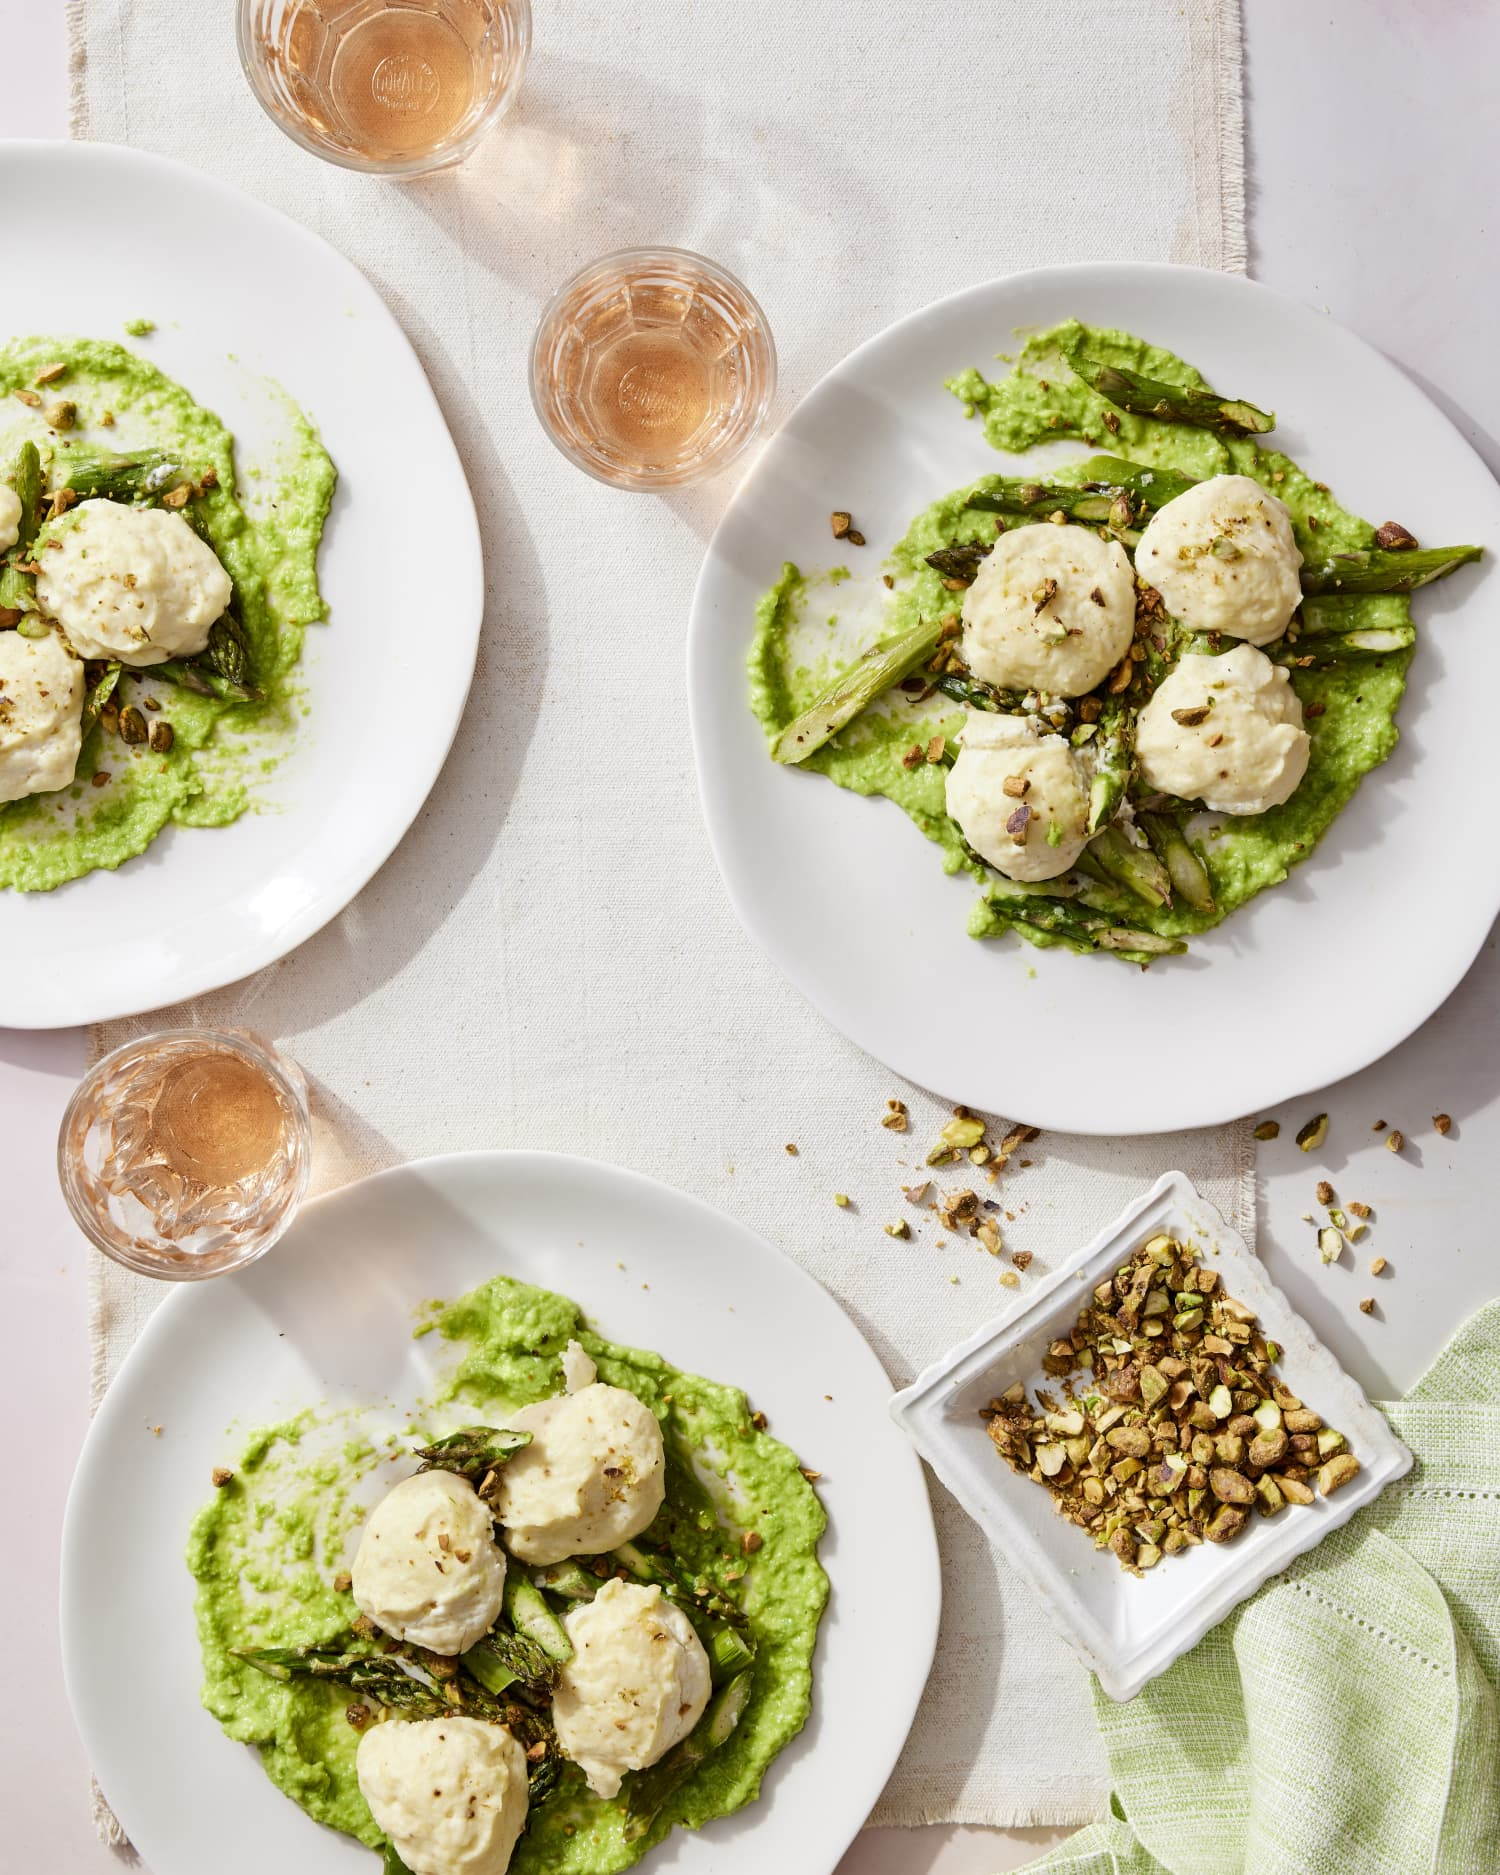 These Pillowy Lemon Ricotta Dumplings Are the Best Thing I've Made All Spring